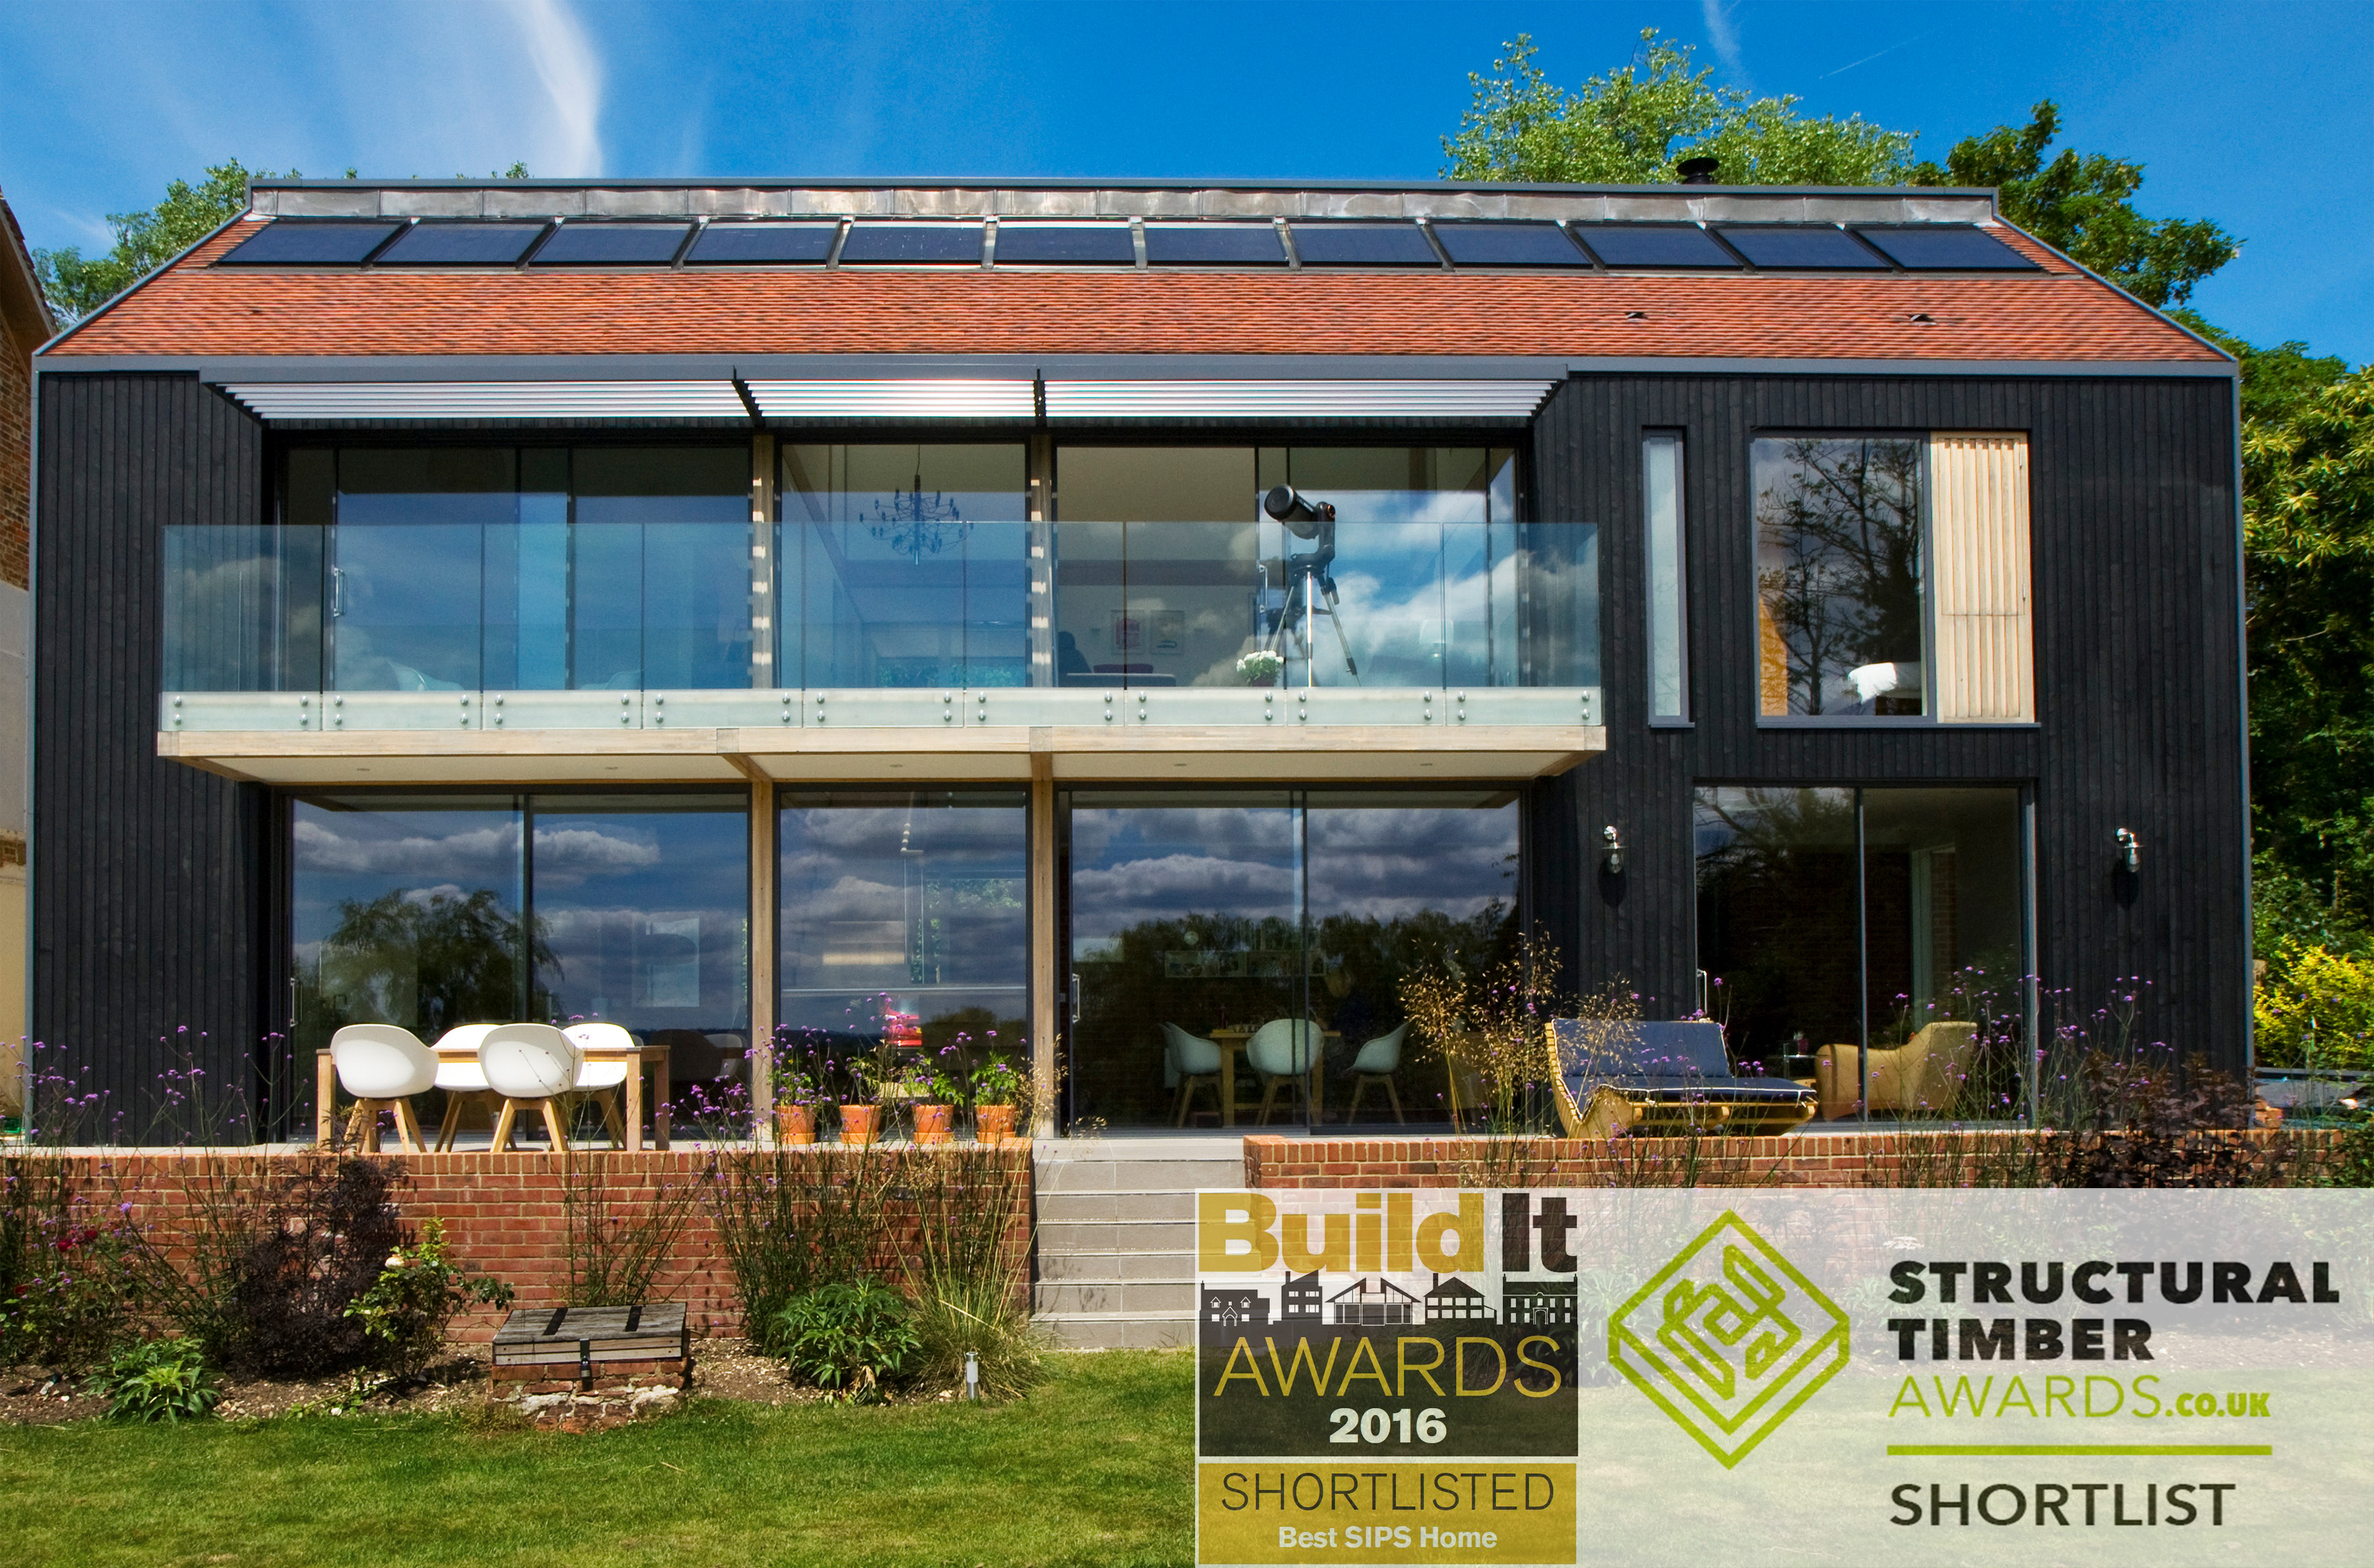 Build It Structural Timber Awards 2016 Glosford Entry